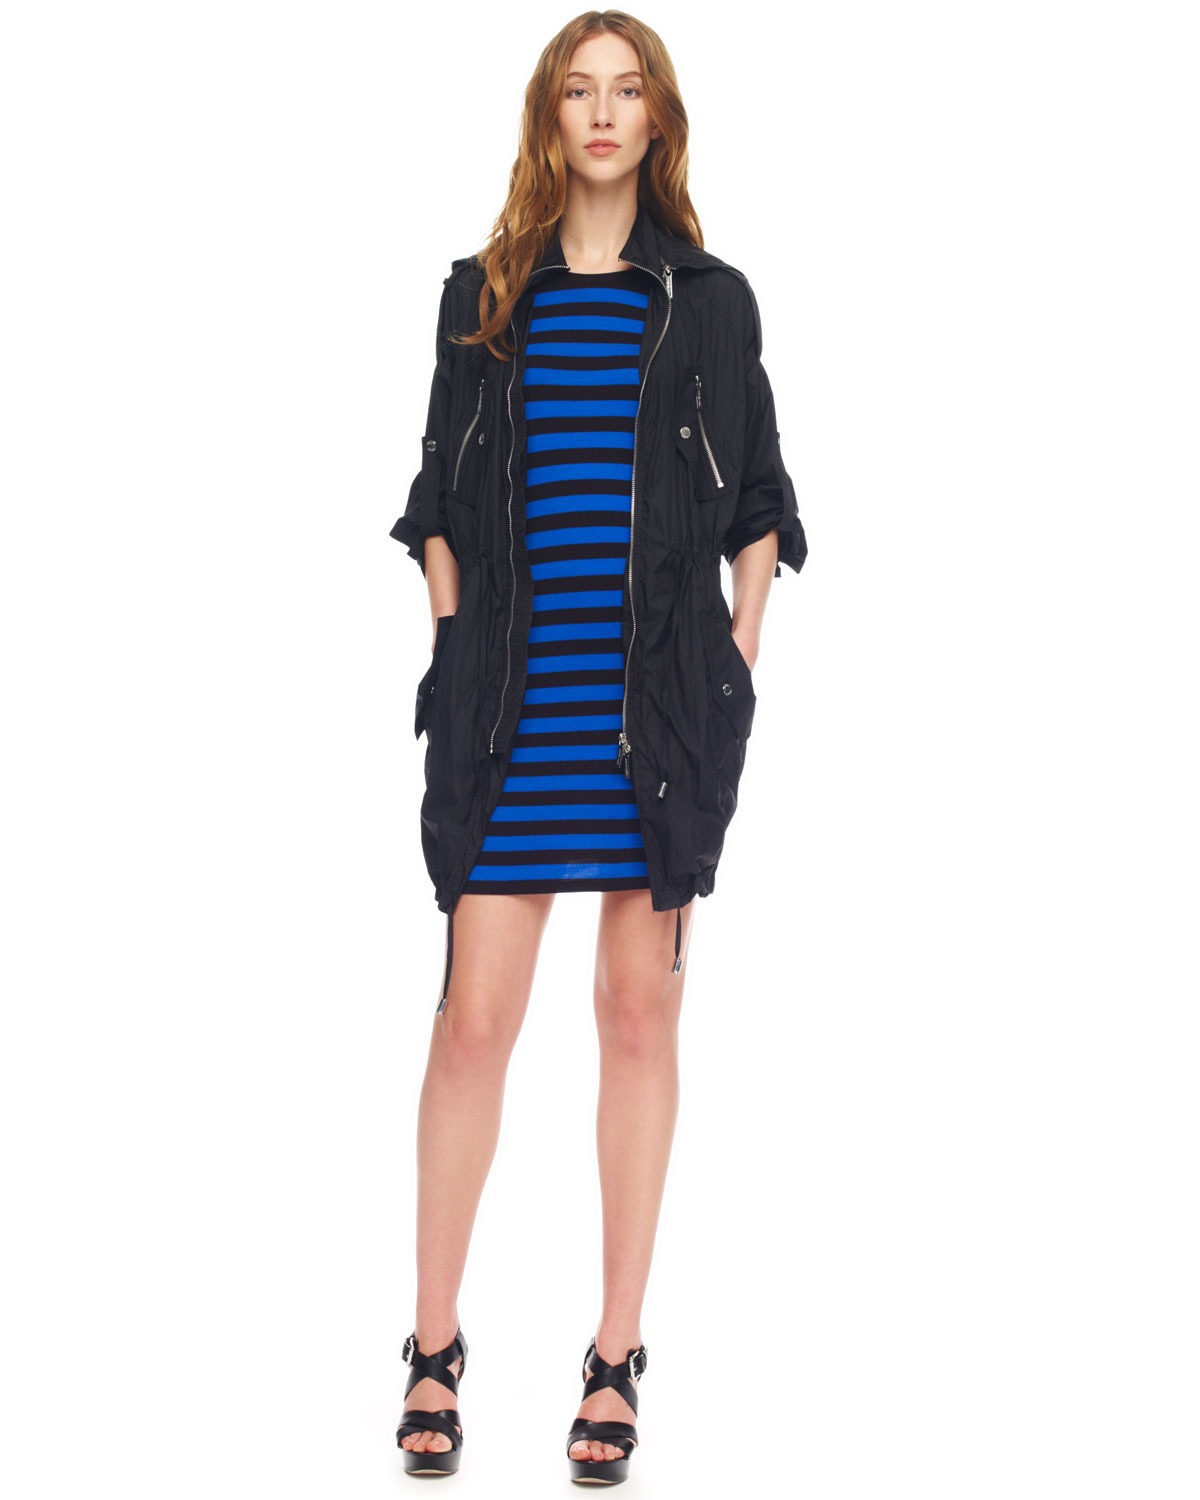 Hooded Jersey Dress - How To Pick